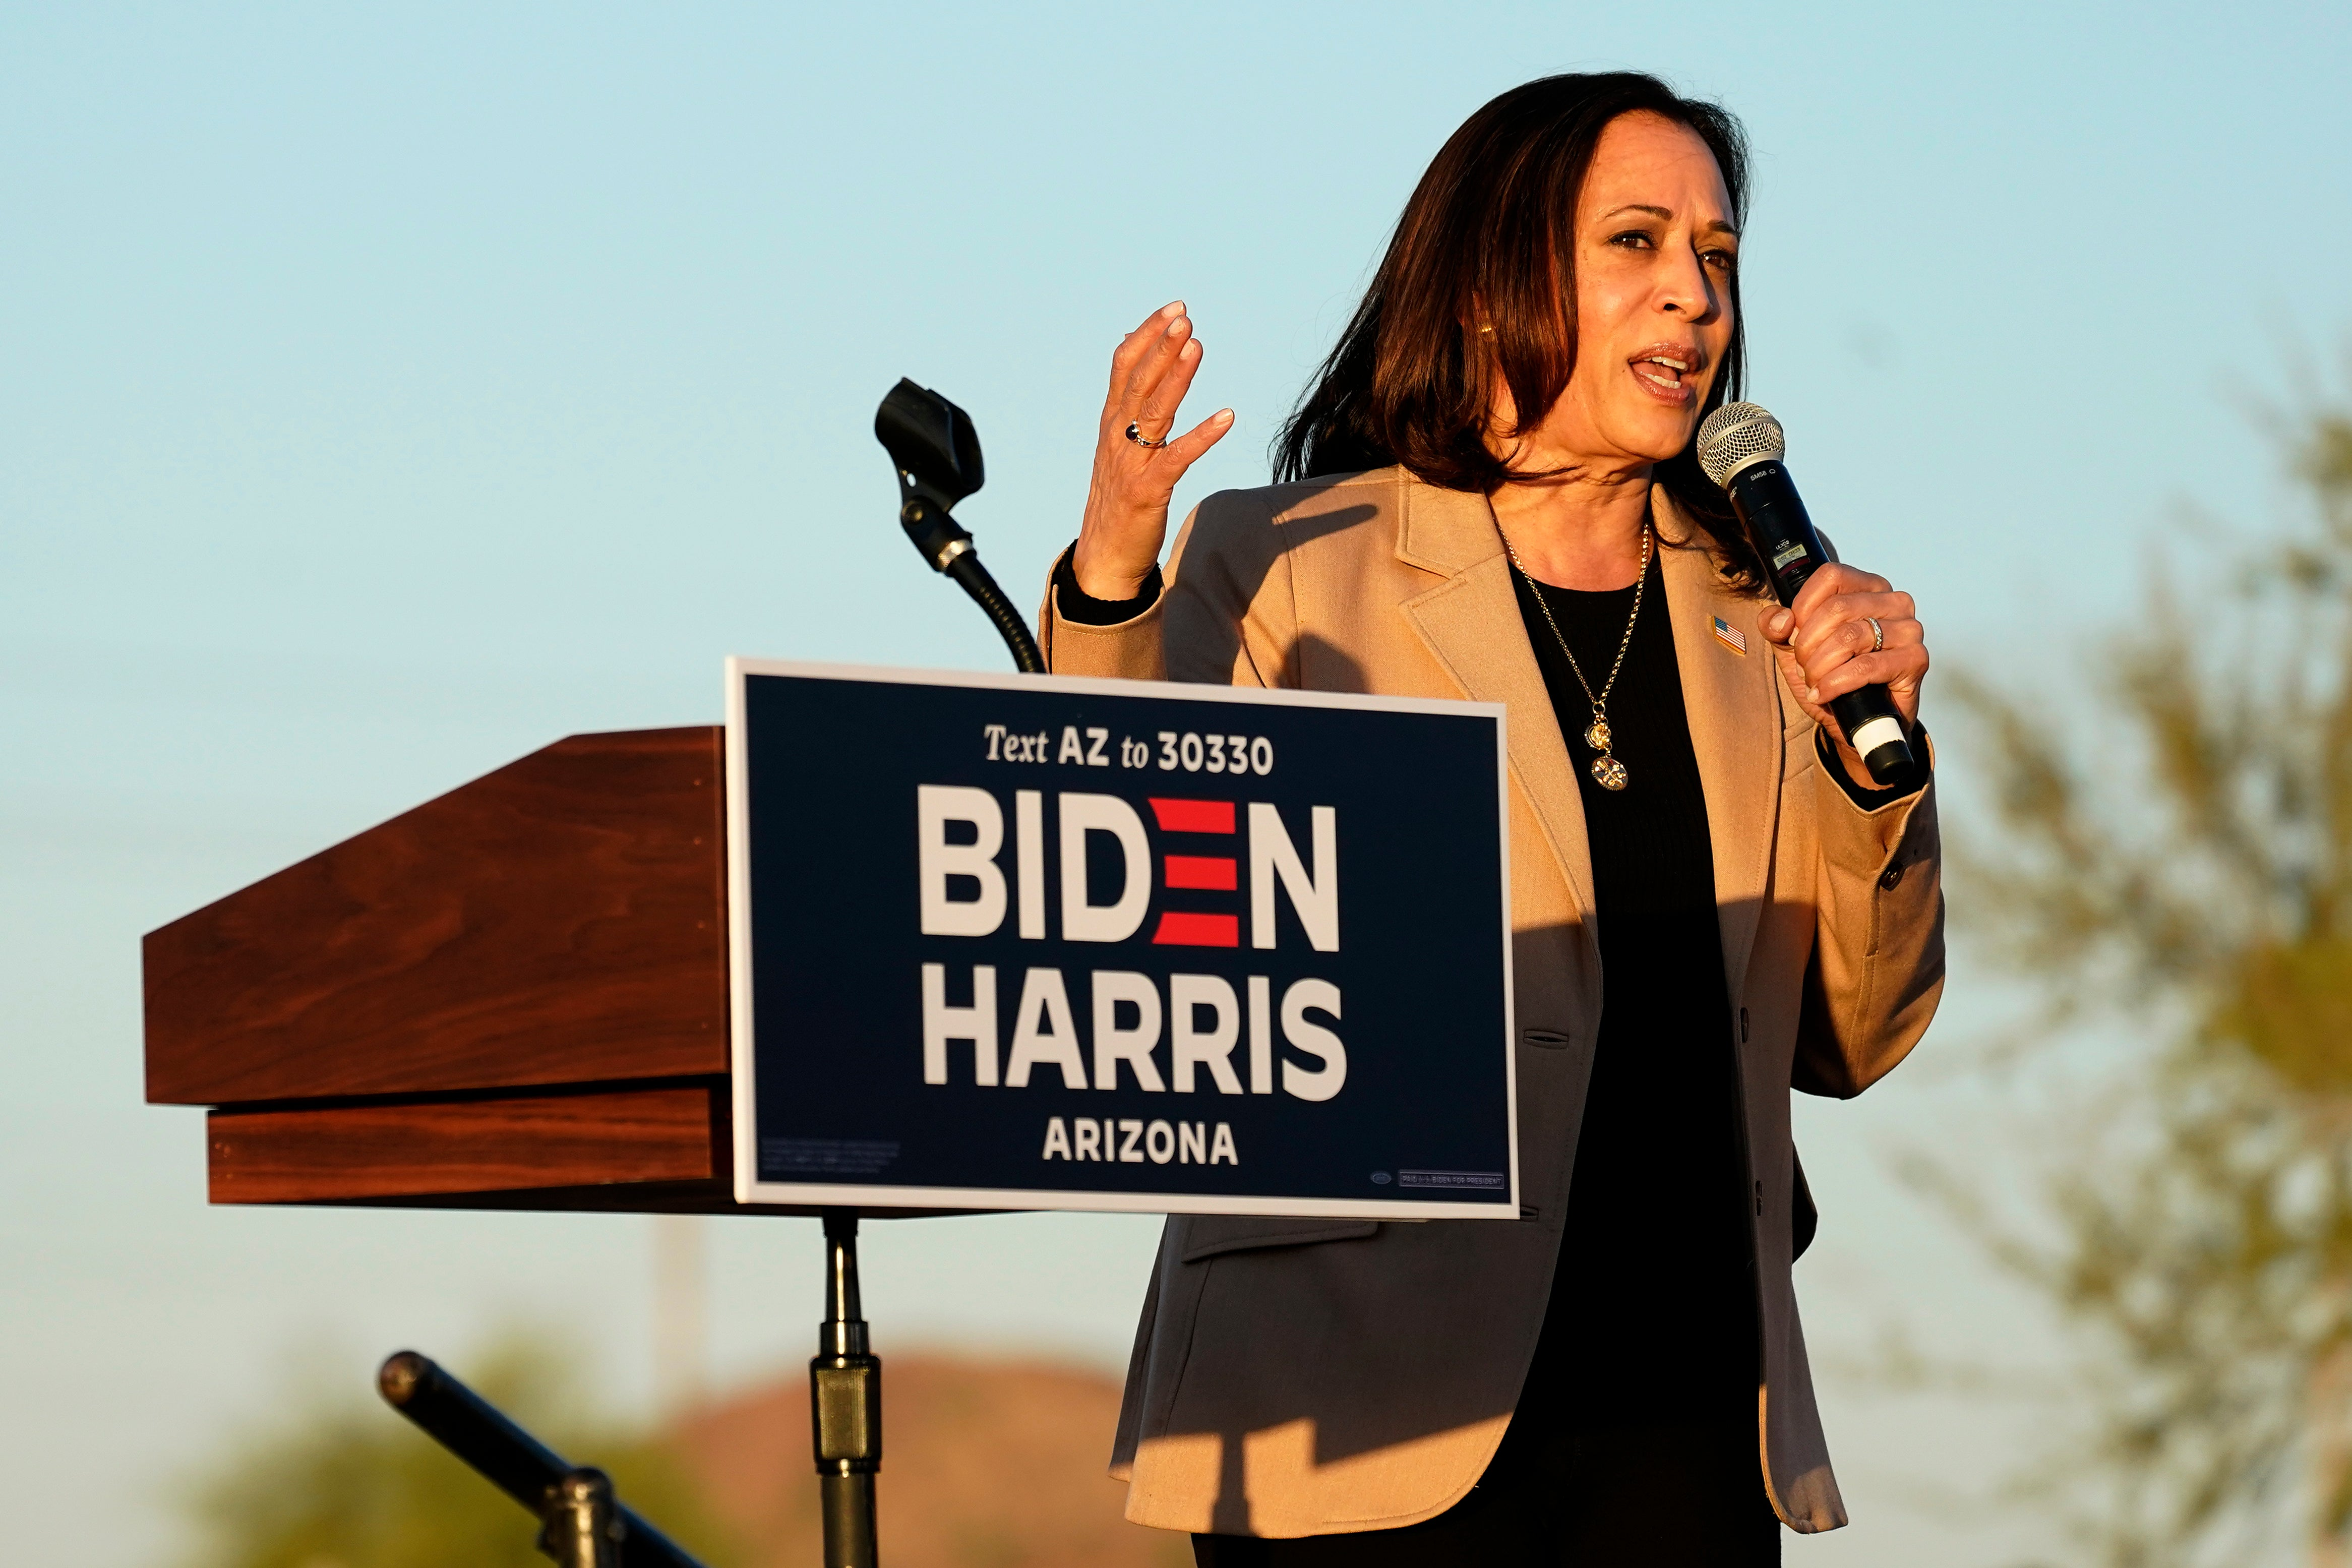 Exclusive: American voters would not approve of a Kamala Harris presidency, poll finds